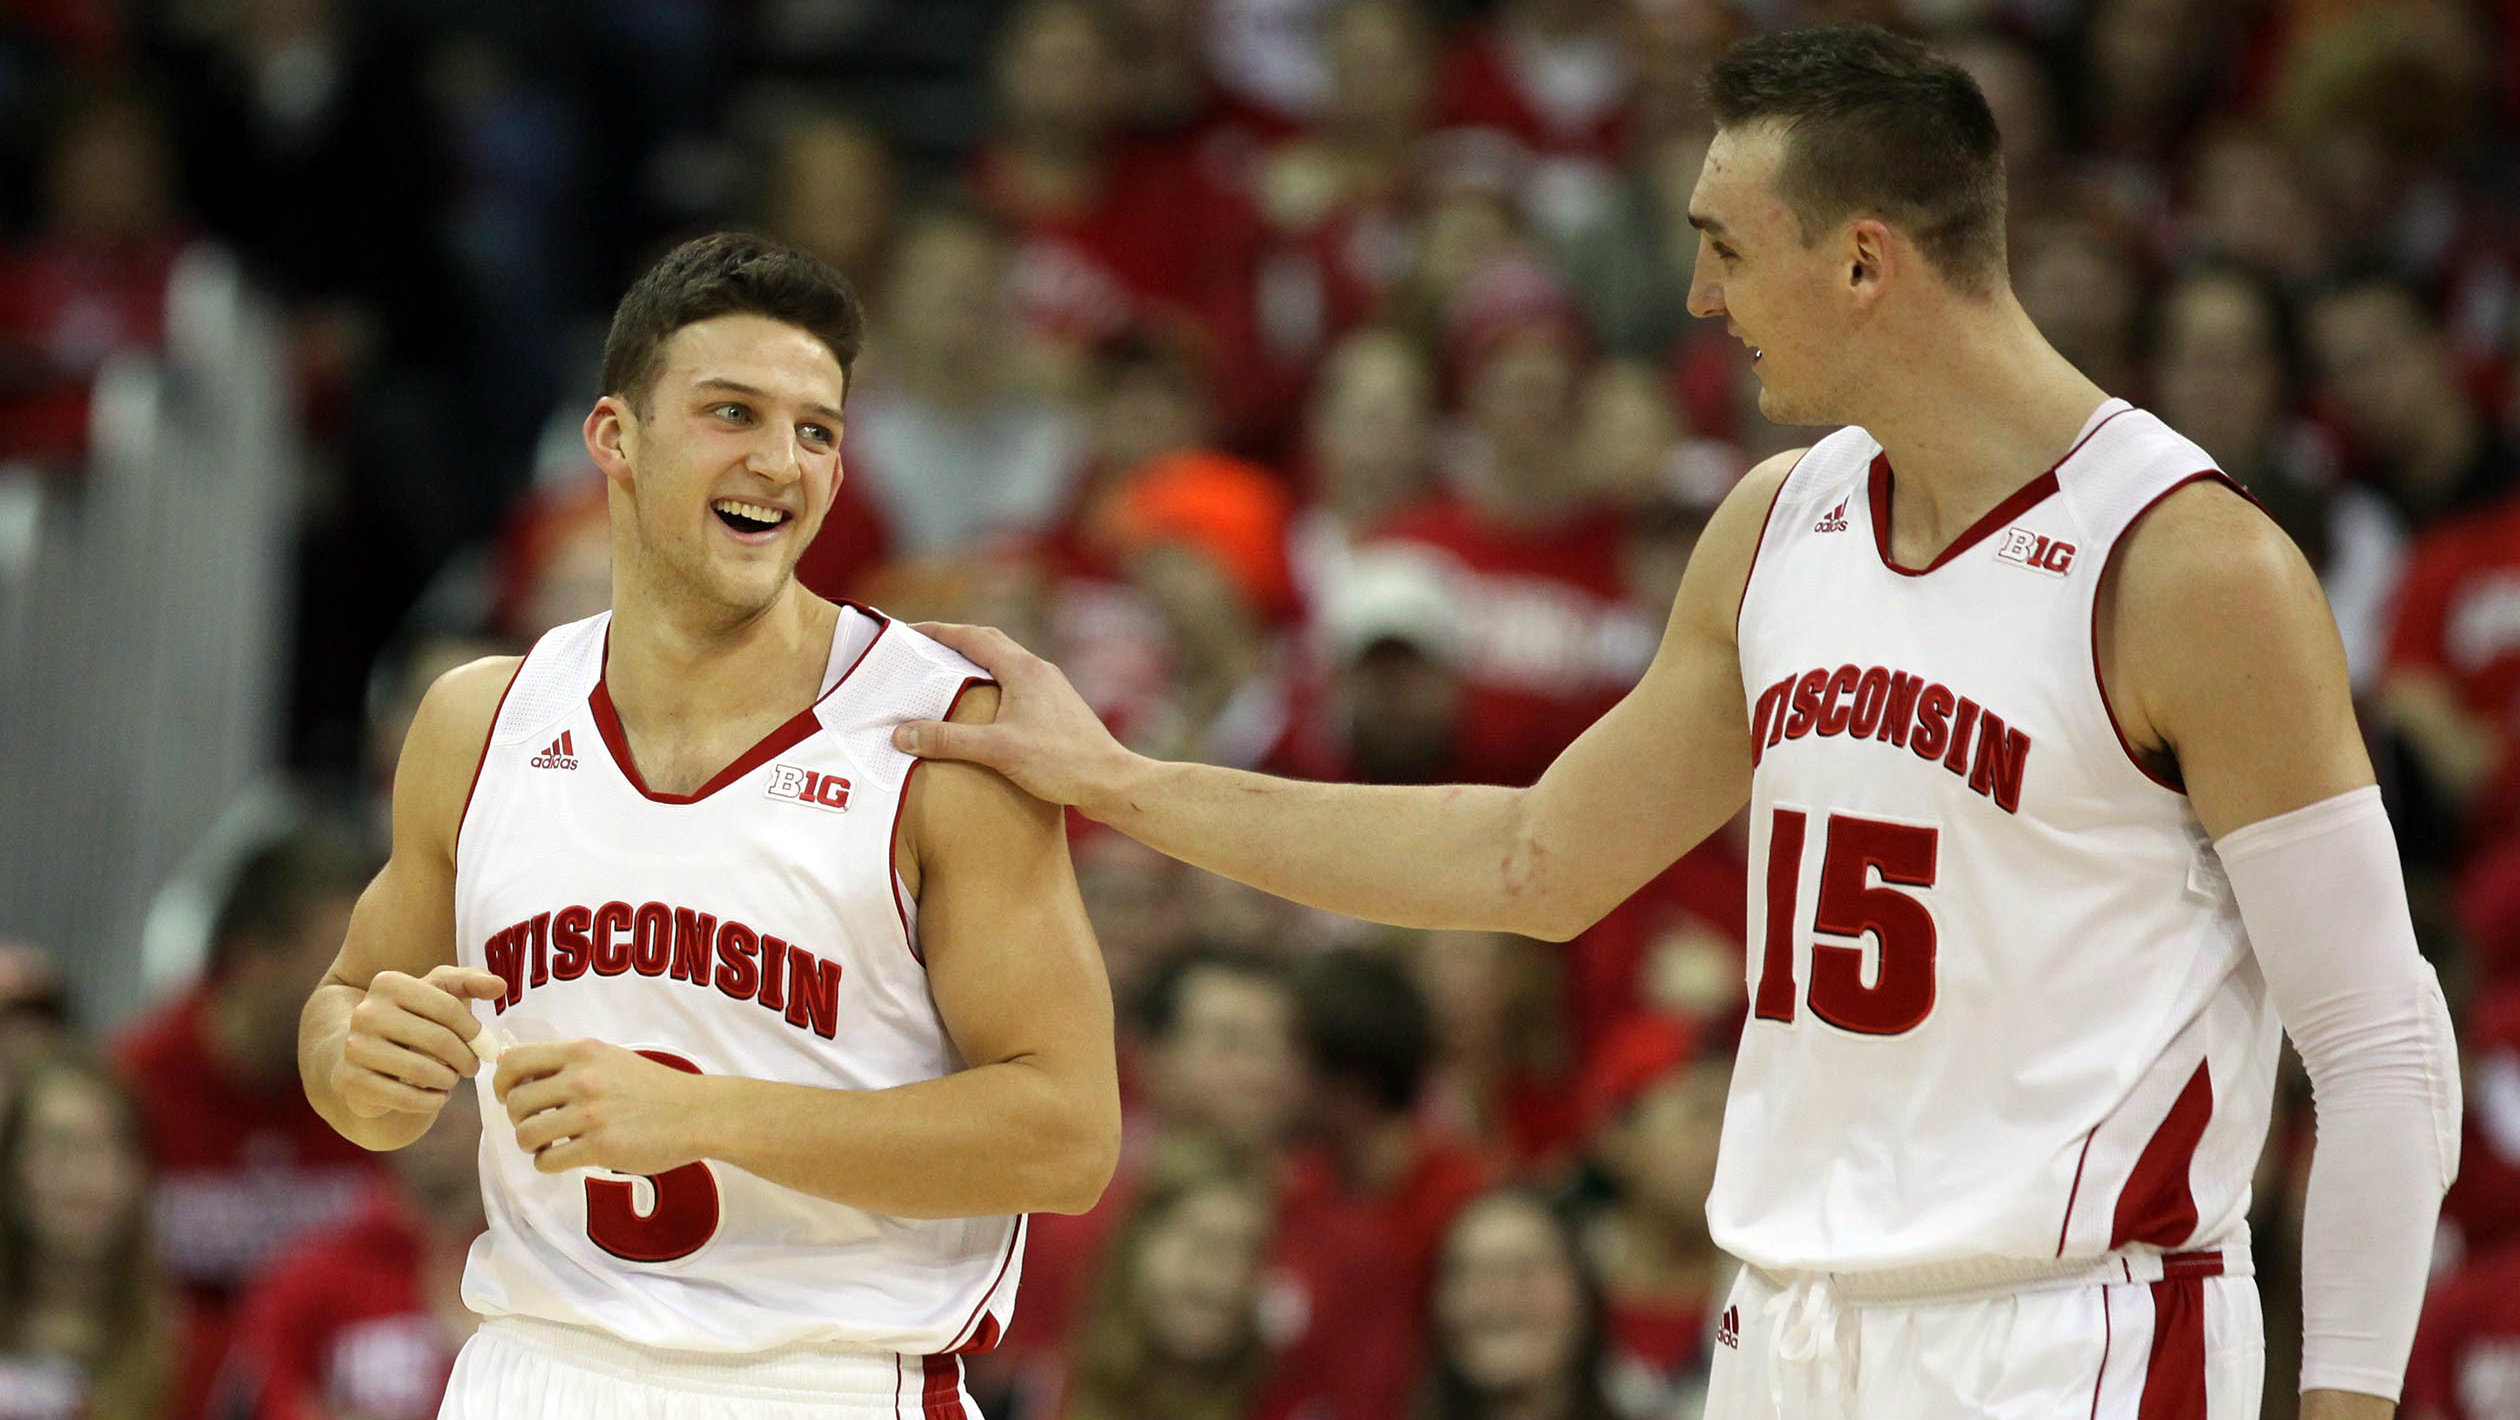 Wisconsin Badgers guard Zak Showalter (3) gets a pat on the shoulder from Wisconsin Badgers forward Sam Dekker (15) at the Kohl Center.